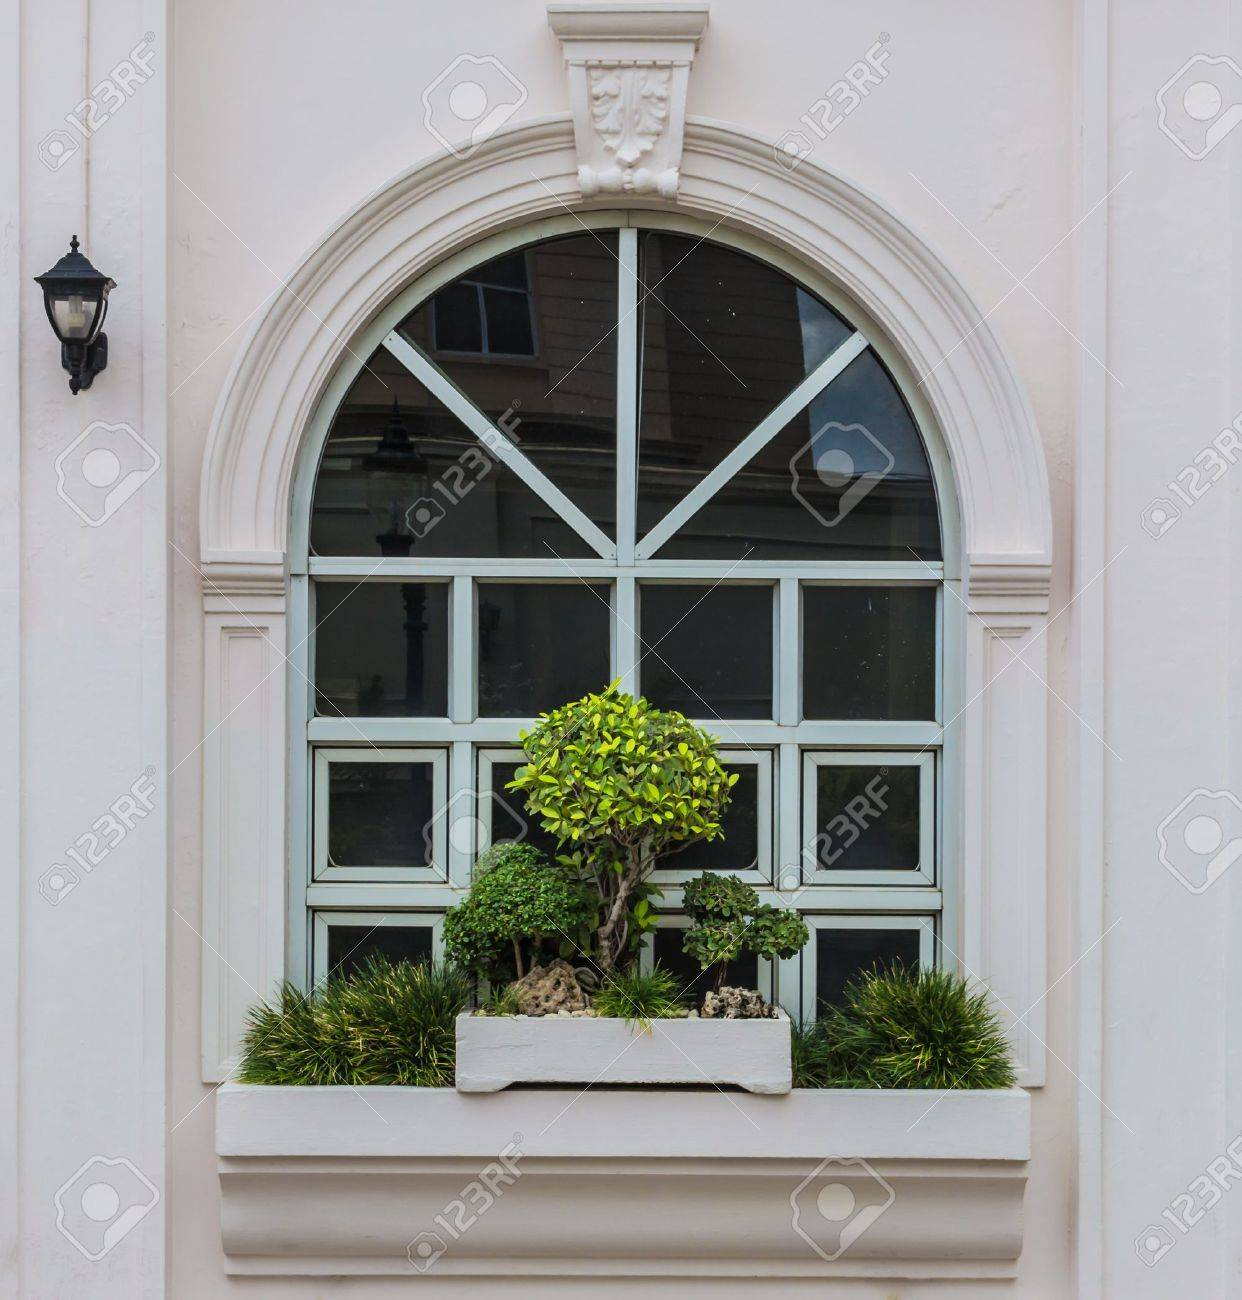 Arch window with bonsai decoration and street lamp reflection Stock Photo - 14752490